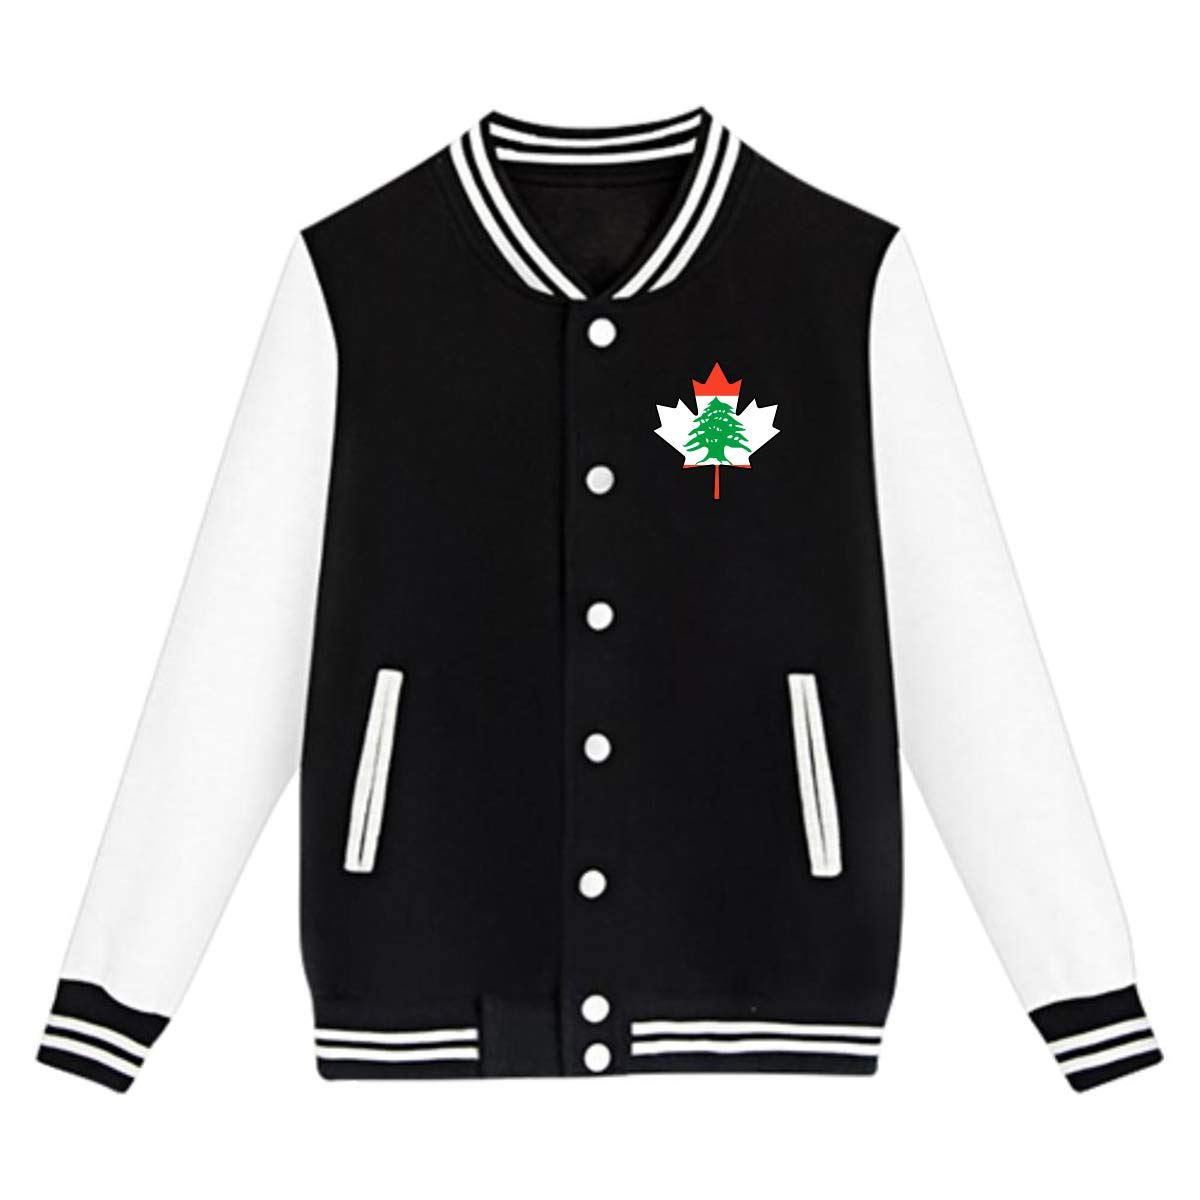 Lebanon Flag Canada Maple Leaf Coat Sweatshirt Outwear Unisex Teen Baseball Uniform Jacket